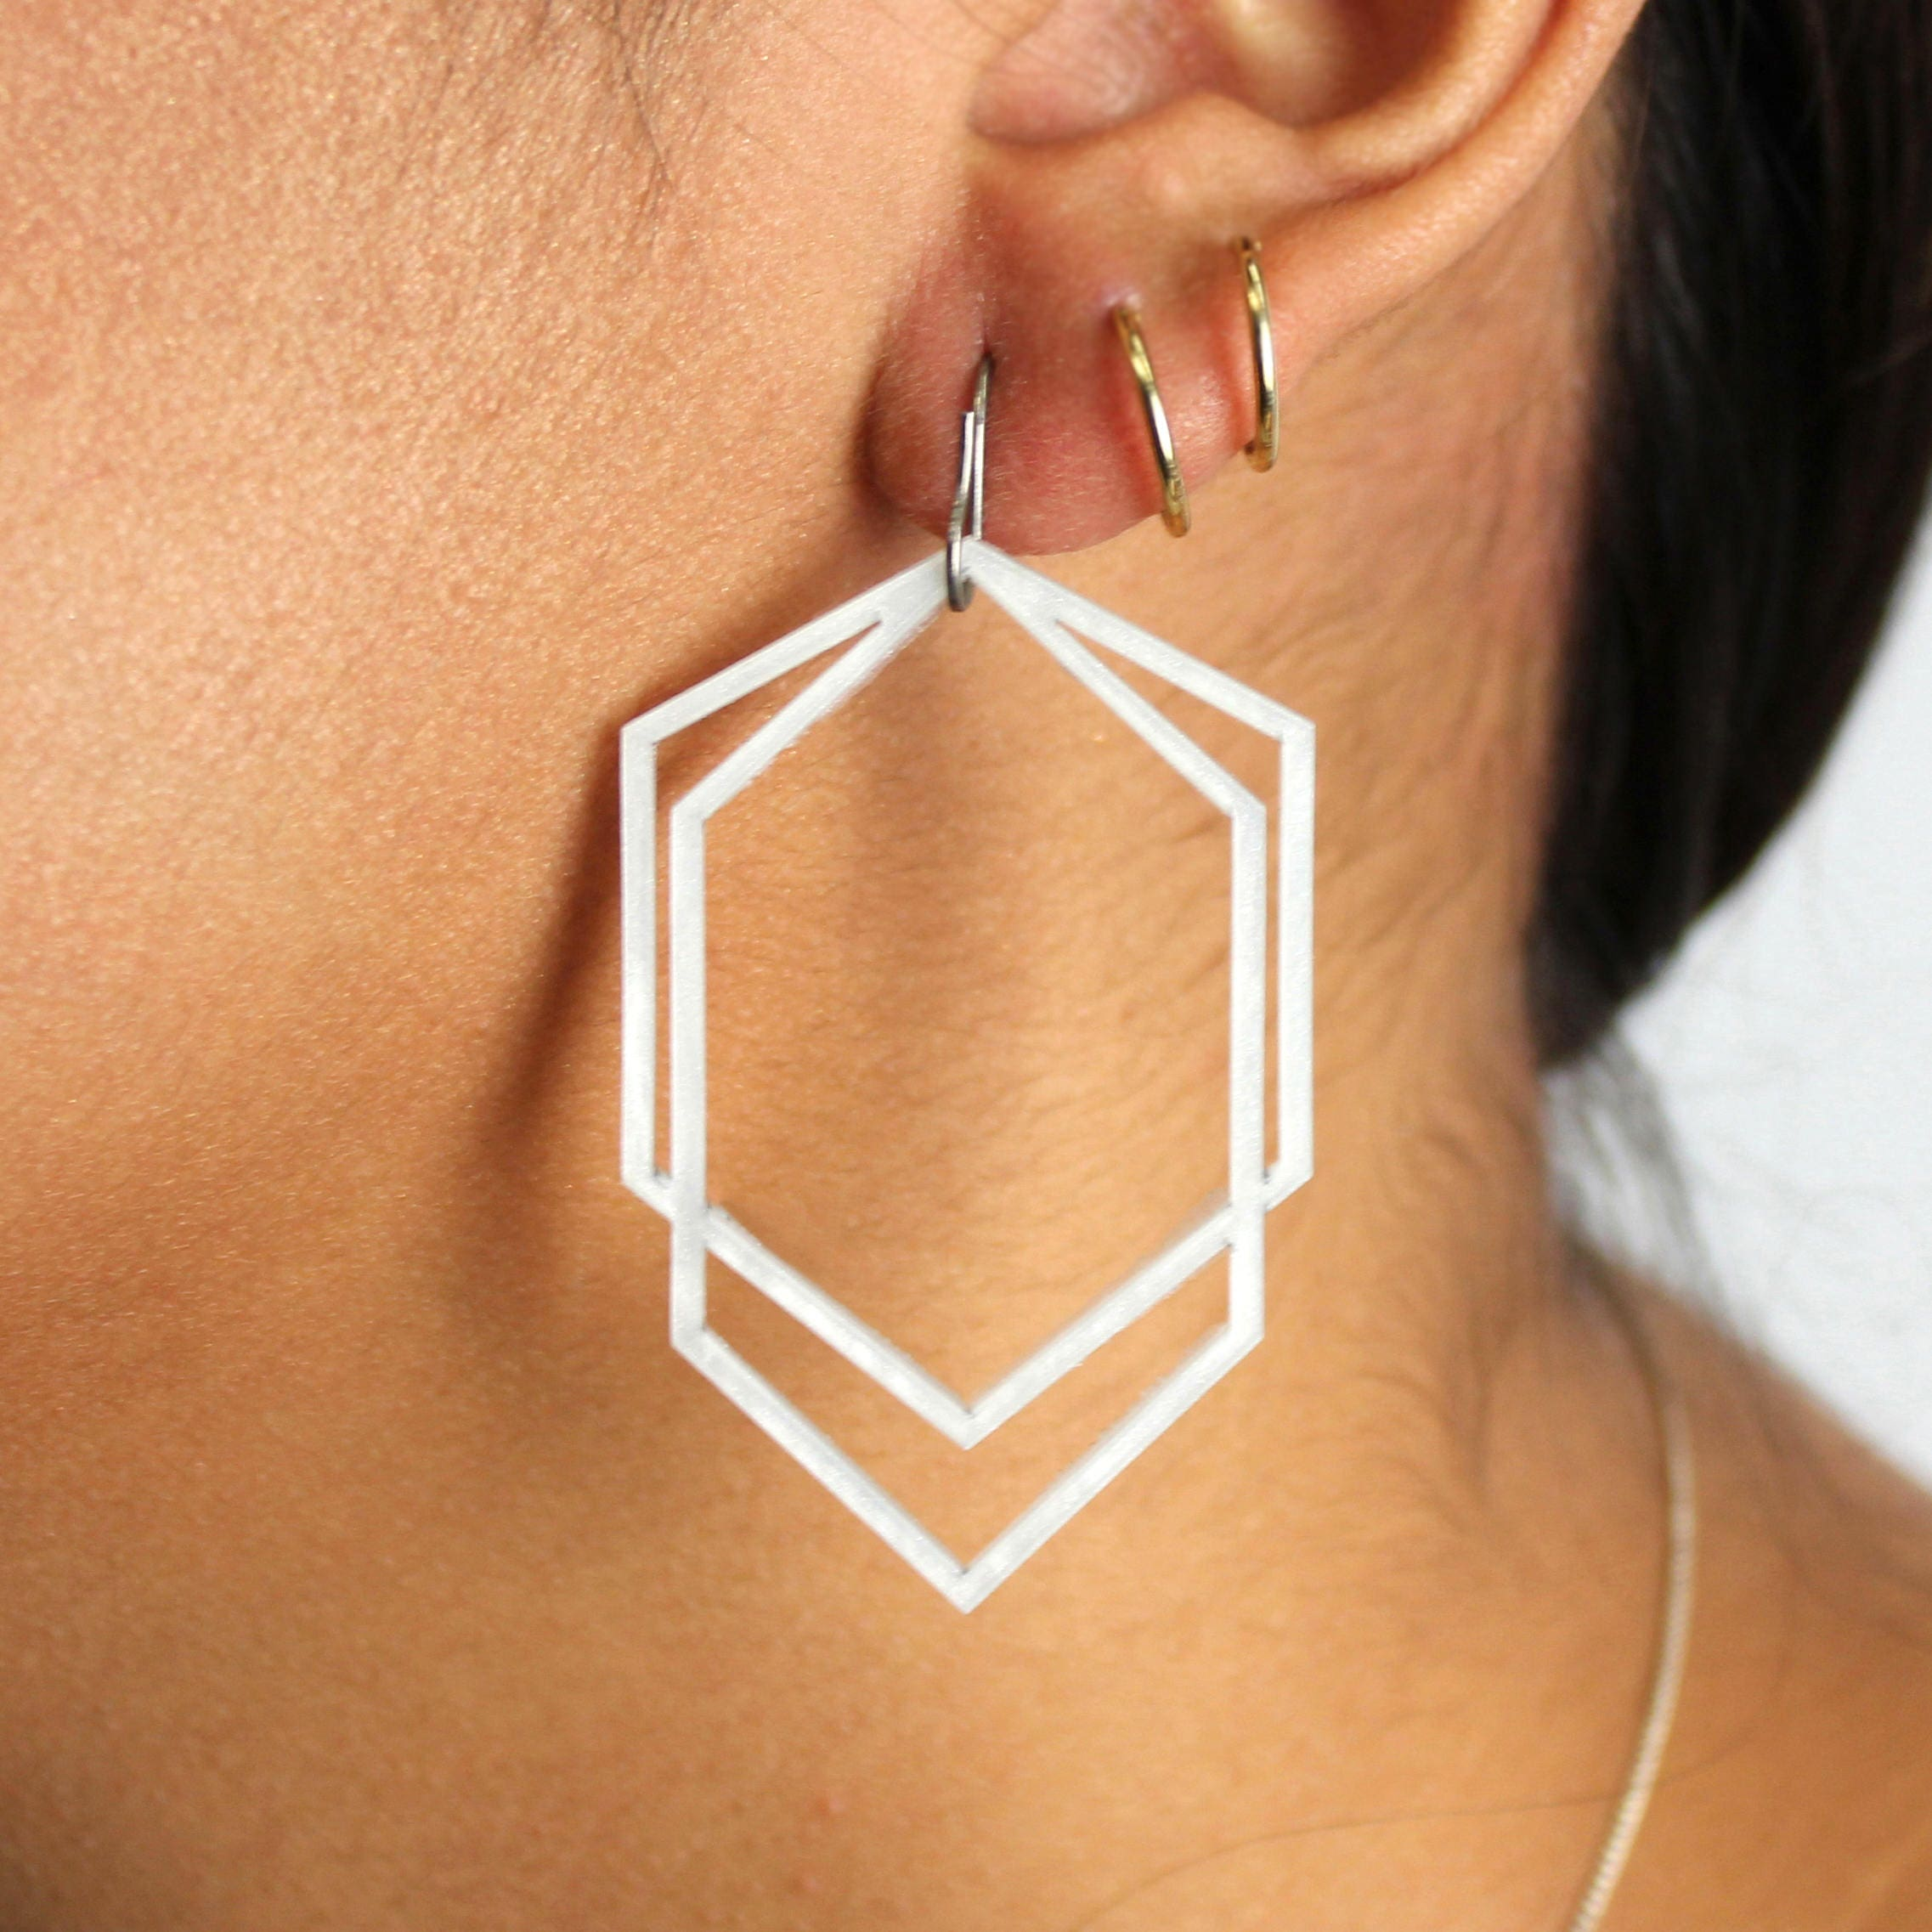 earrings hexagon rachel jewellery jackson sophisticato